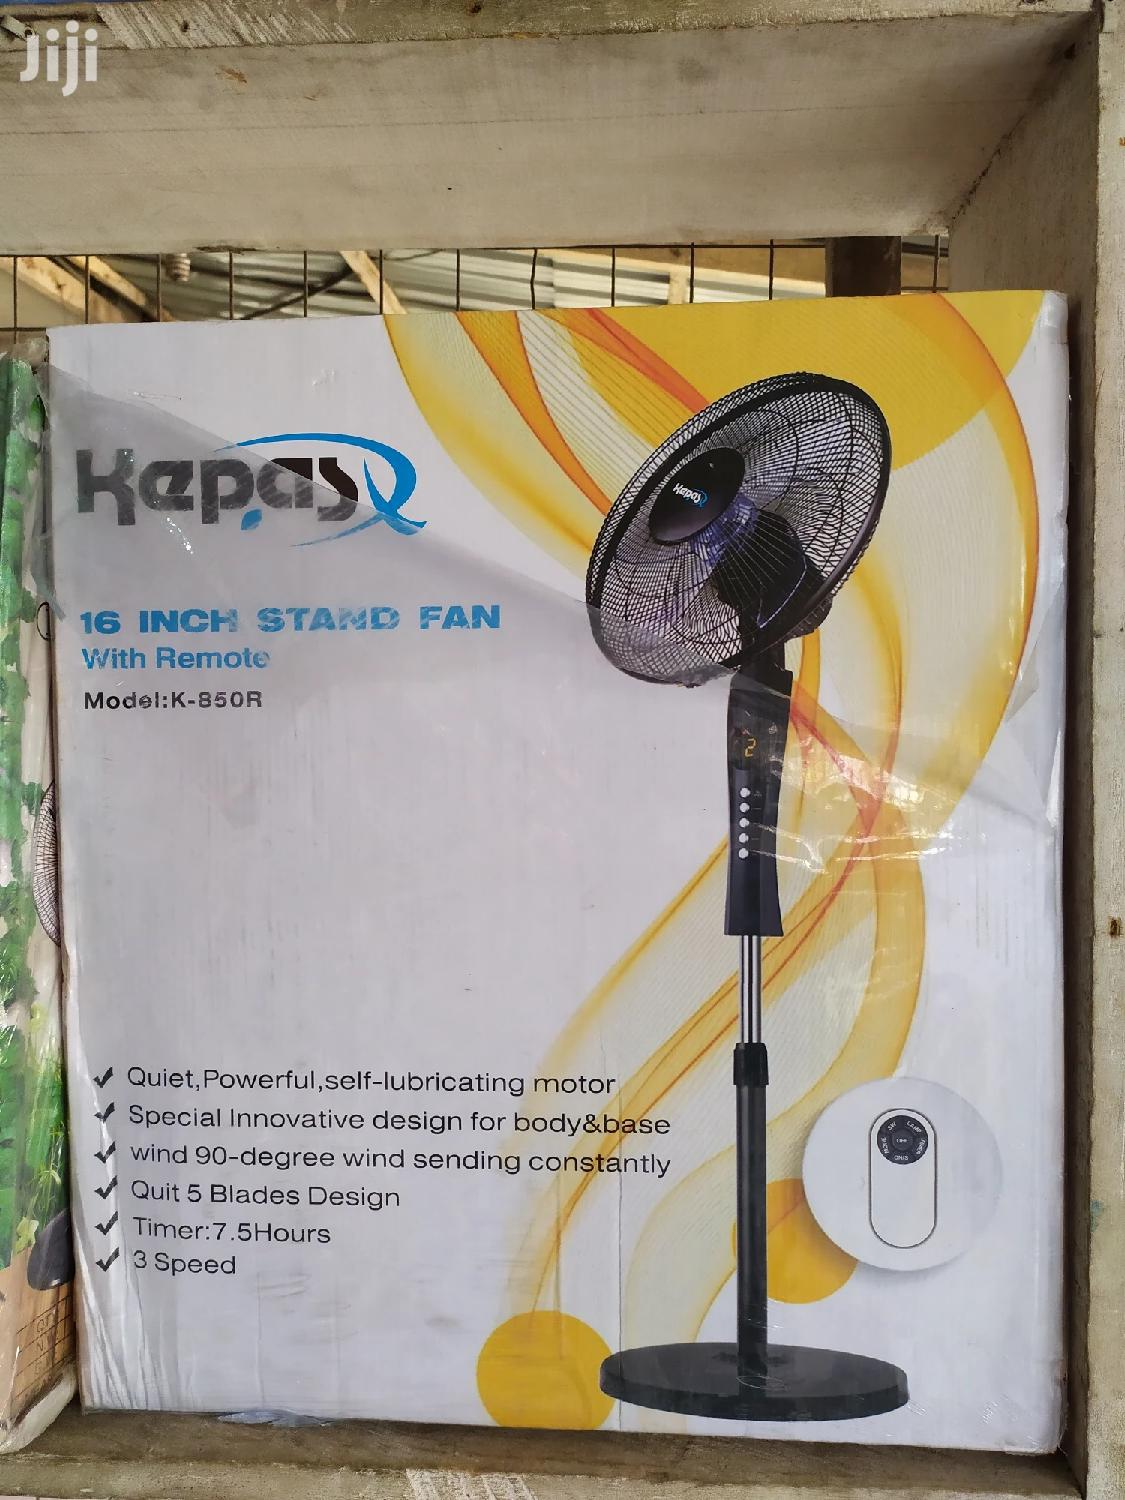 Kepas Standing Fan With Remote